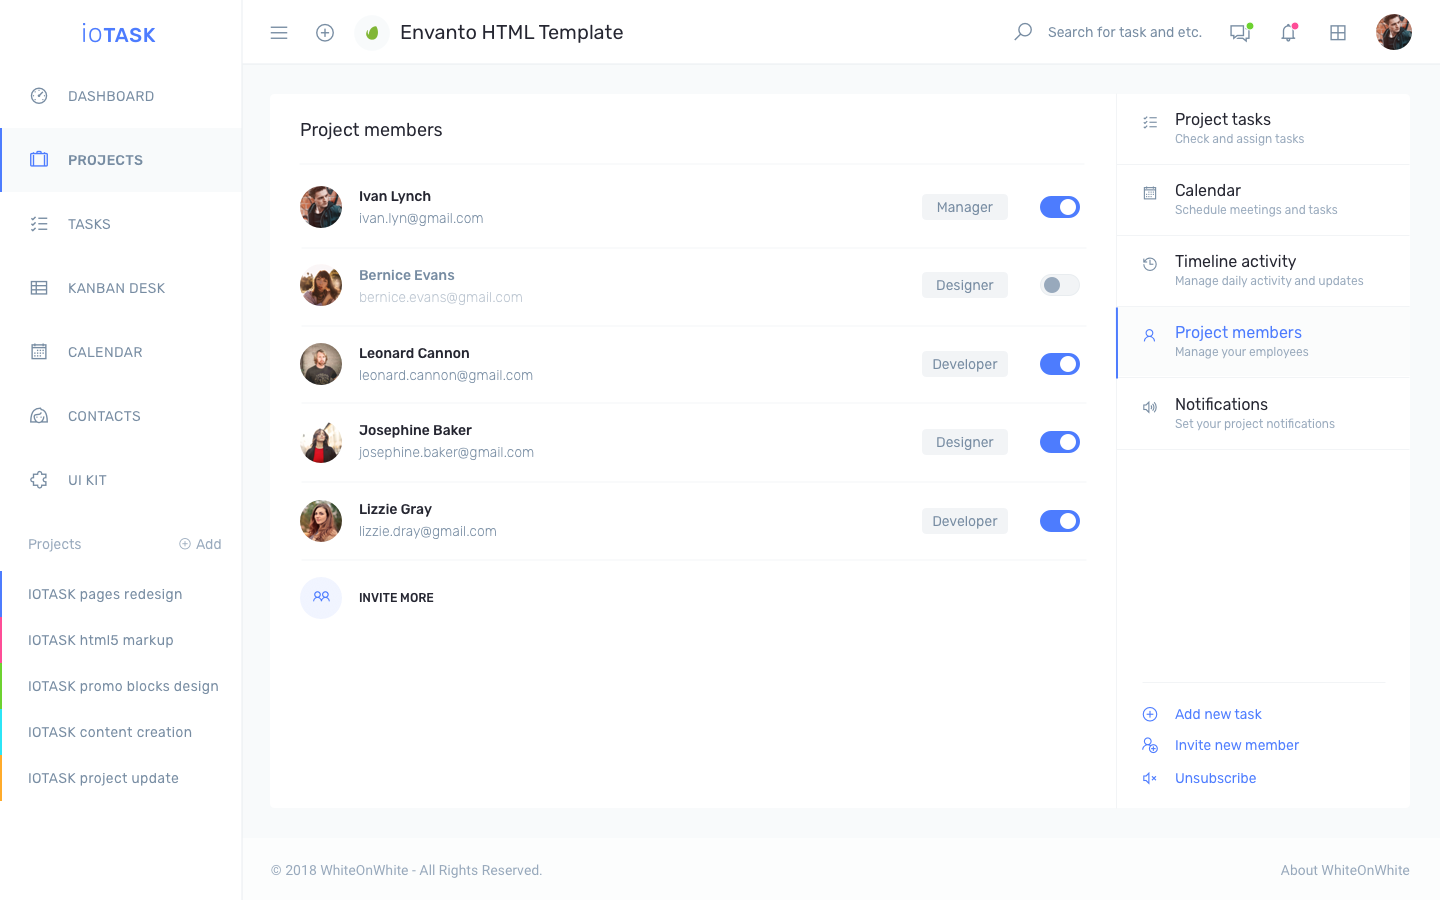 iotask preview project management